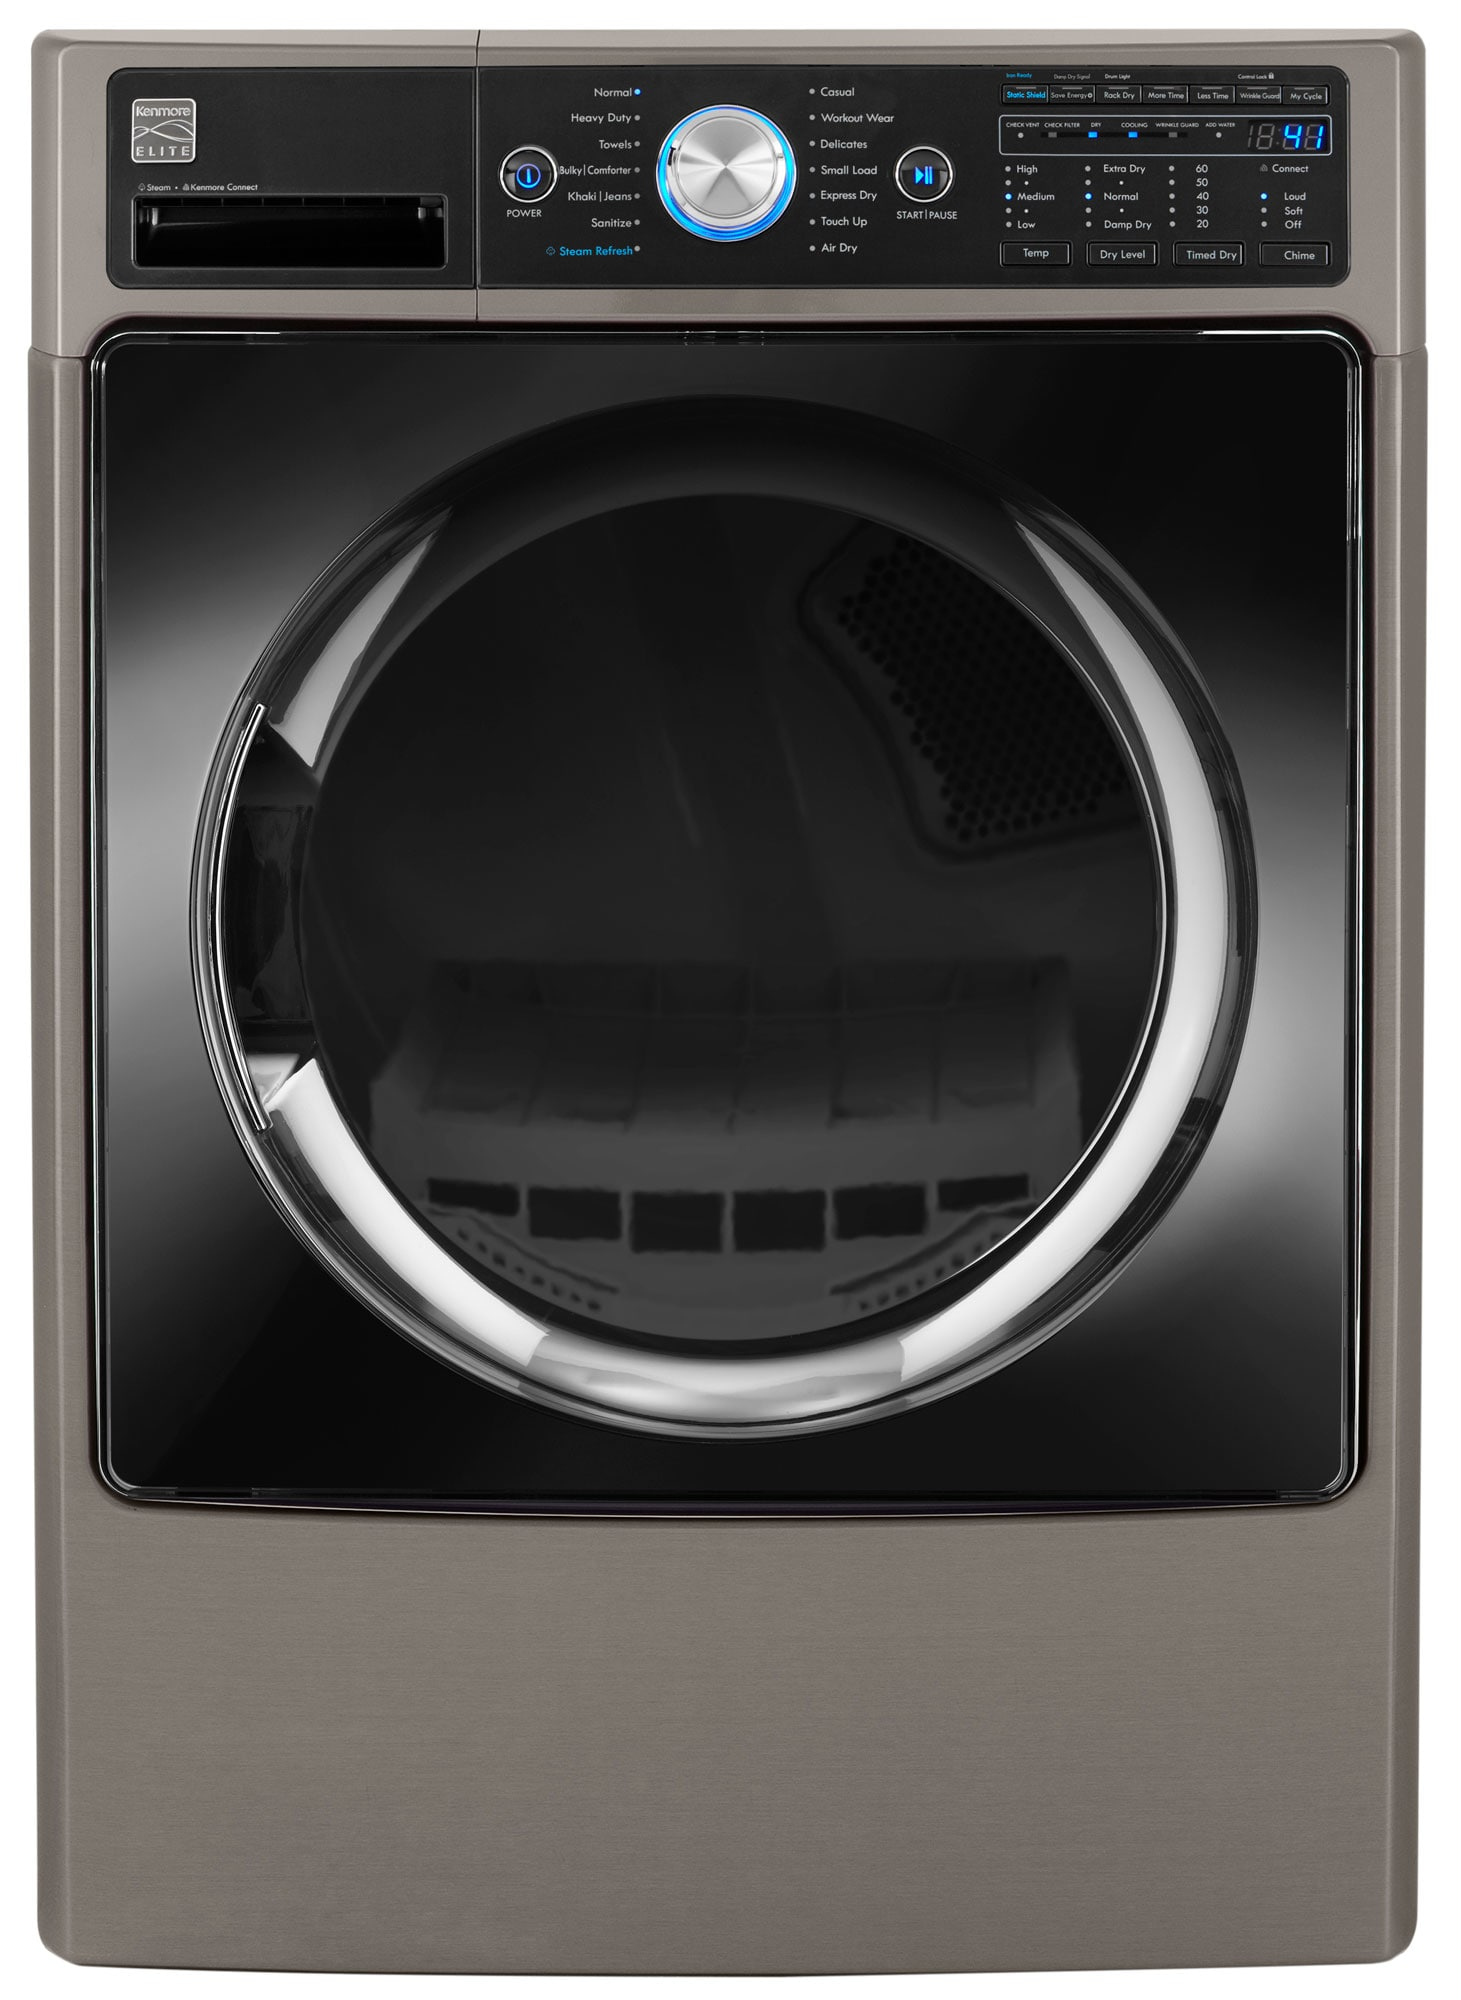 Steam, space, and style—the Kenmore Elite 91583 has it all.